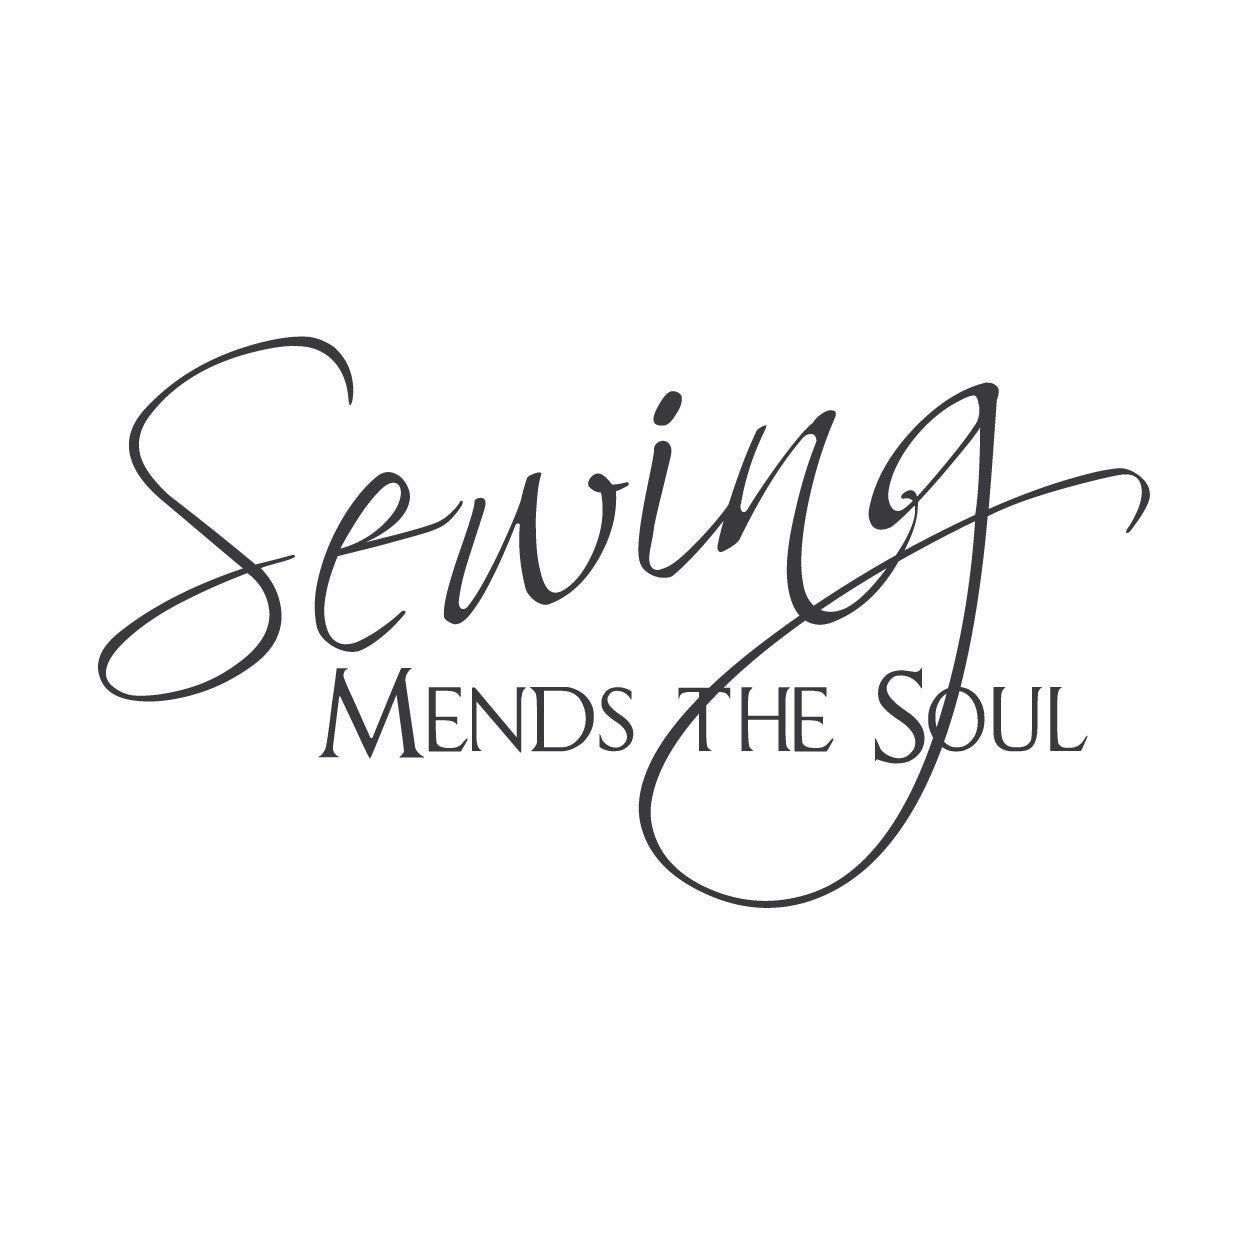 """Sewing mends the soul"" Mount wall decal!"